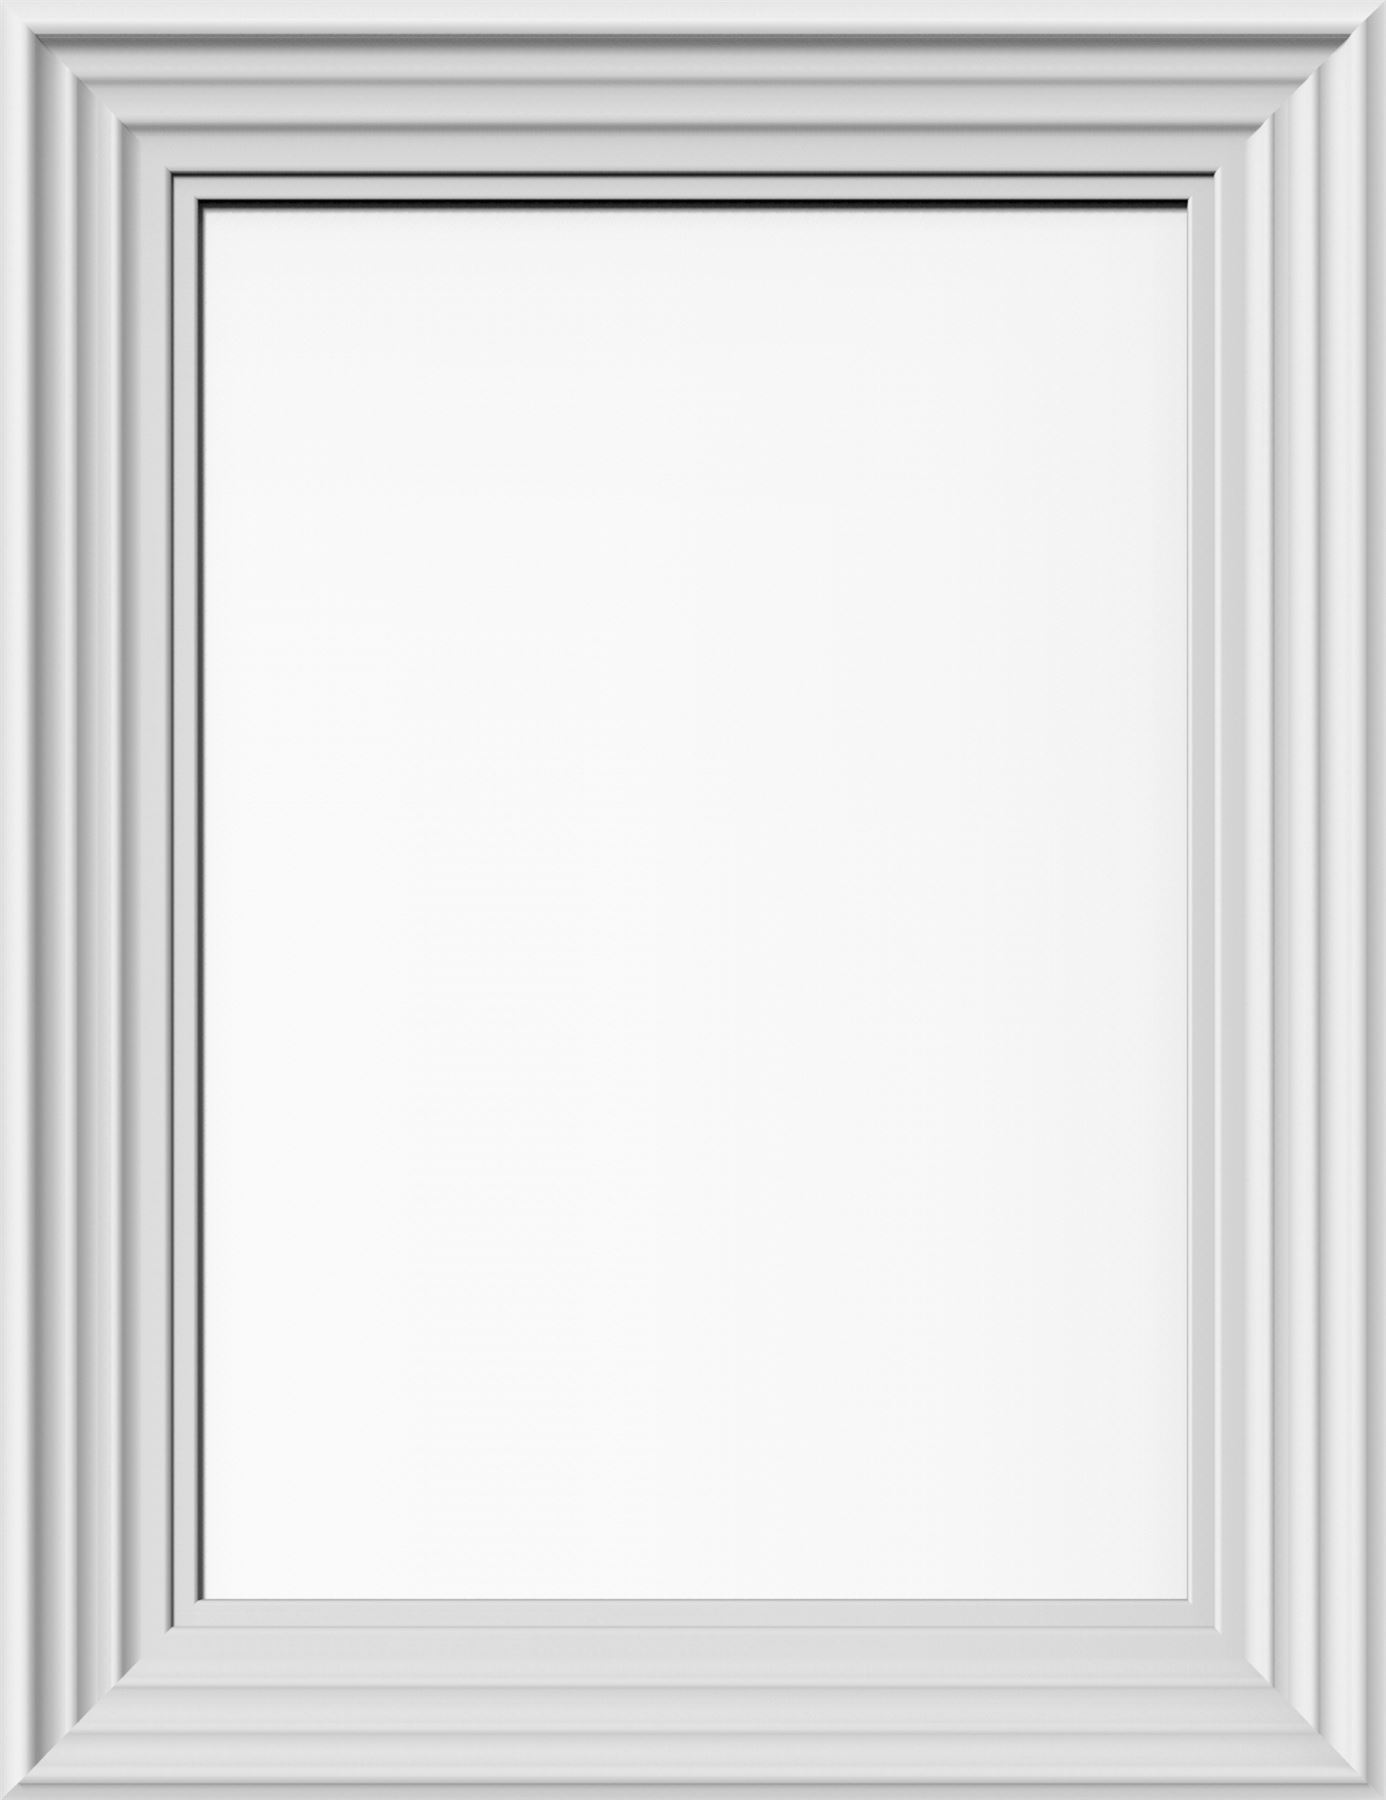 BLACK WHITE OAK PHOTO FRAME PICTURE POSTER FRAMES TRADITIONAL STYLE ...